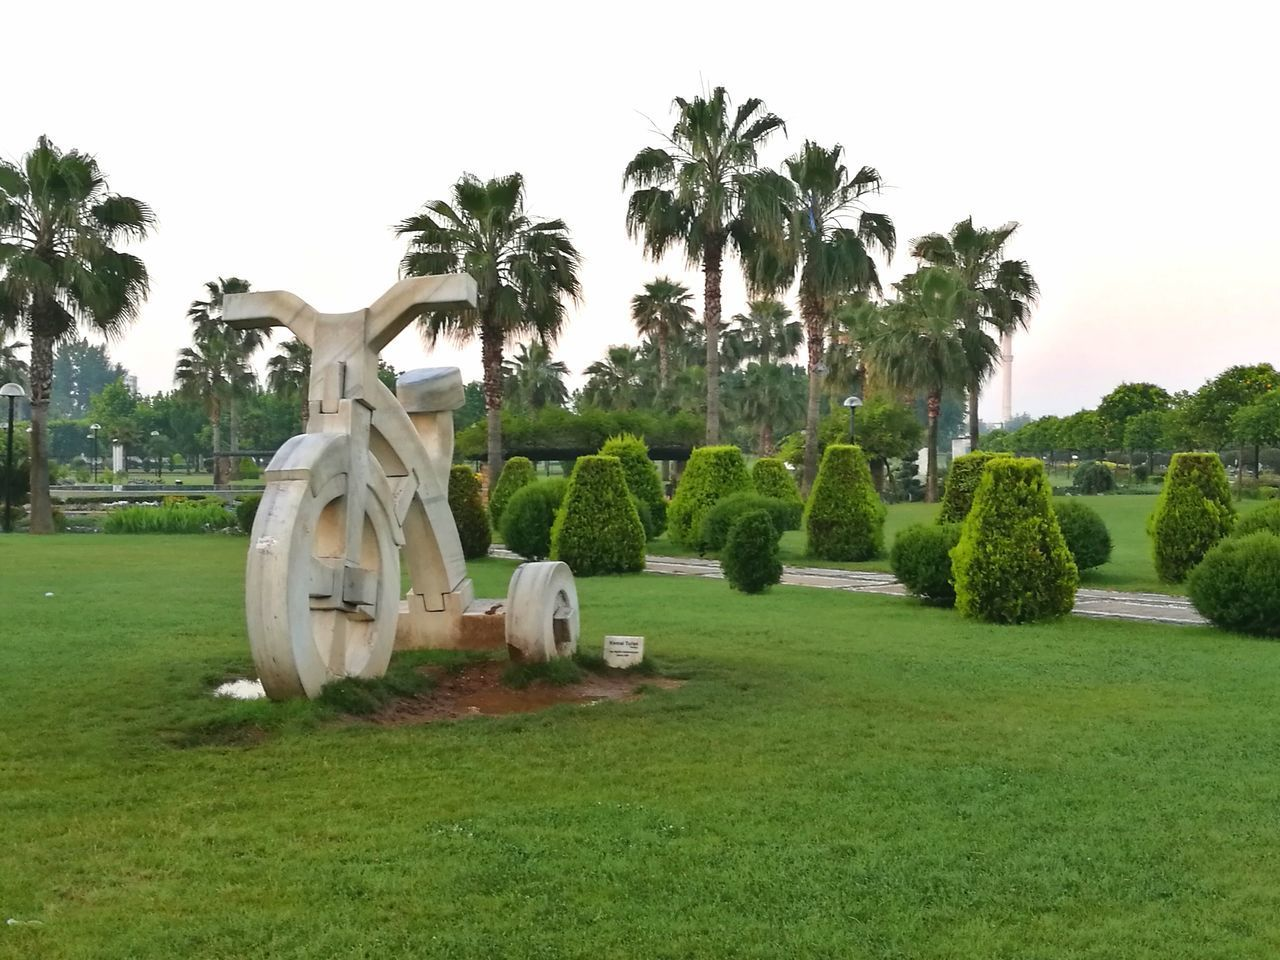 tree, grass, palm tree, outdoors, day, no people, sky, nature, landscape, statue, clear sky, golf, golf course, green - golf course